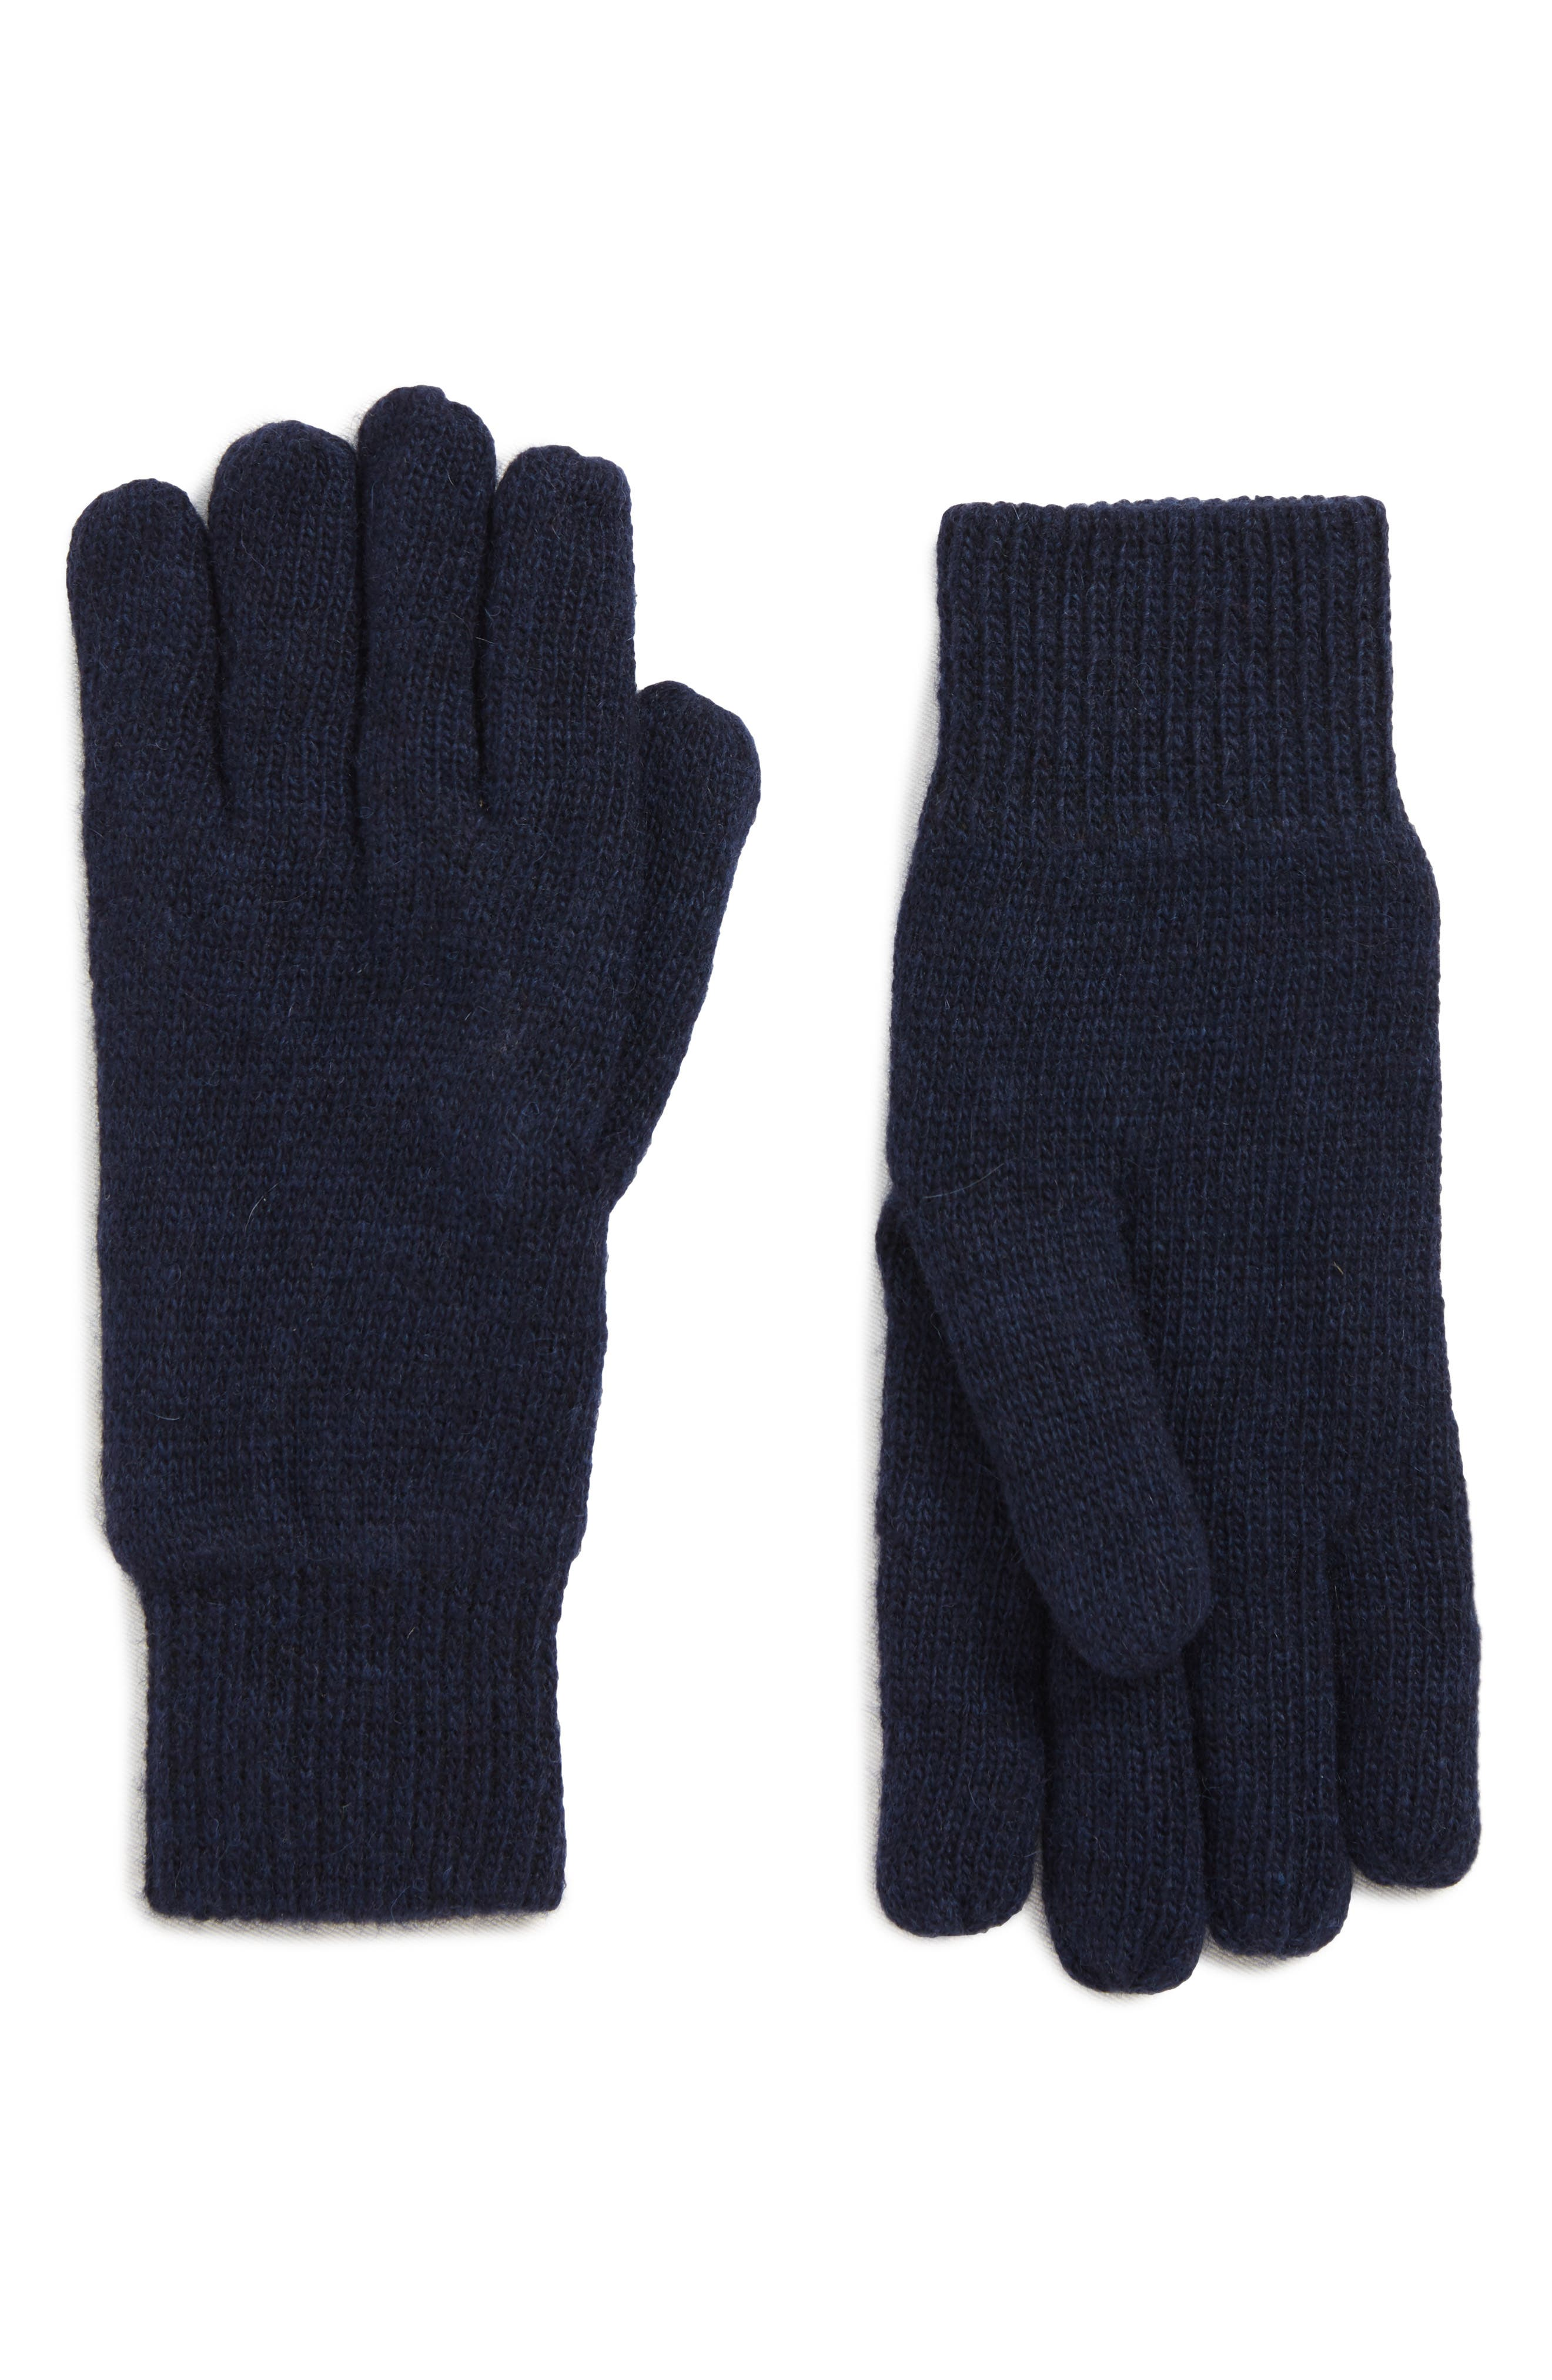 BARBOUR, Carlton Stretch Wool Gloves, Main thumbnail 1, color, NAVY